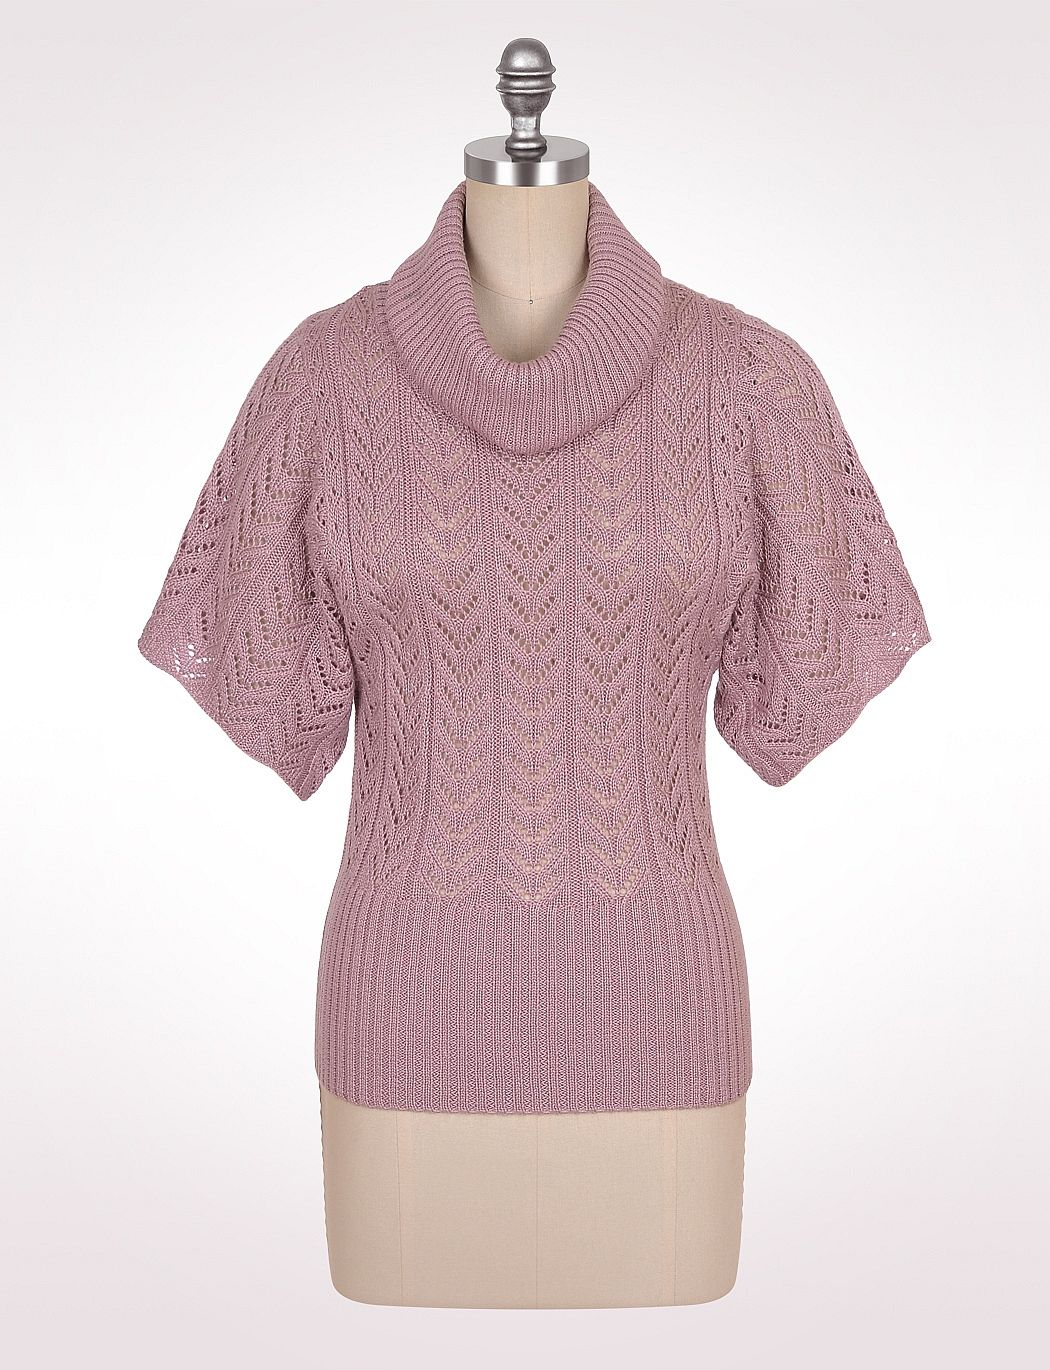 Misses | Sweaters | Cardigans & Shrugs | Pointelle Cowlneck ...